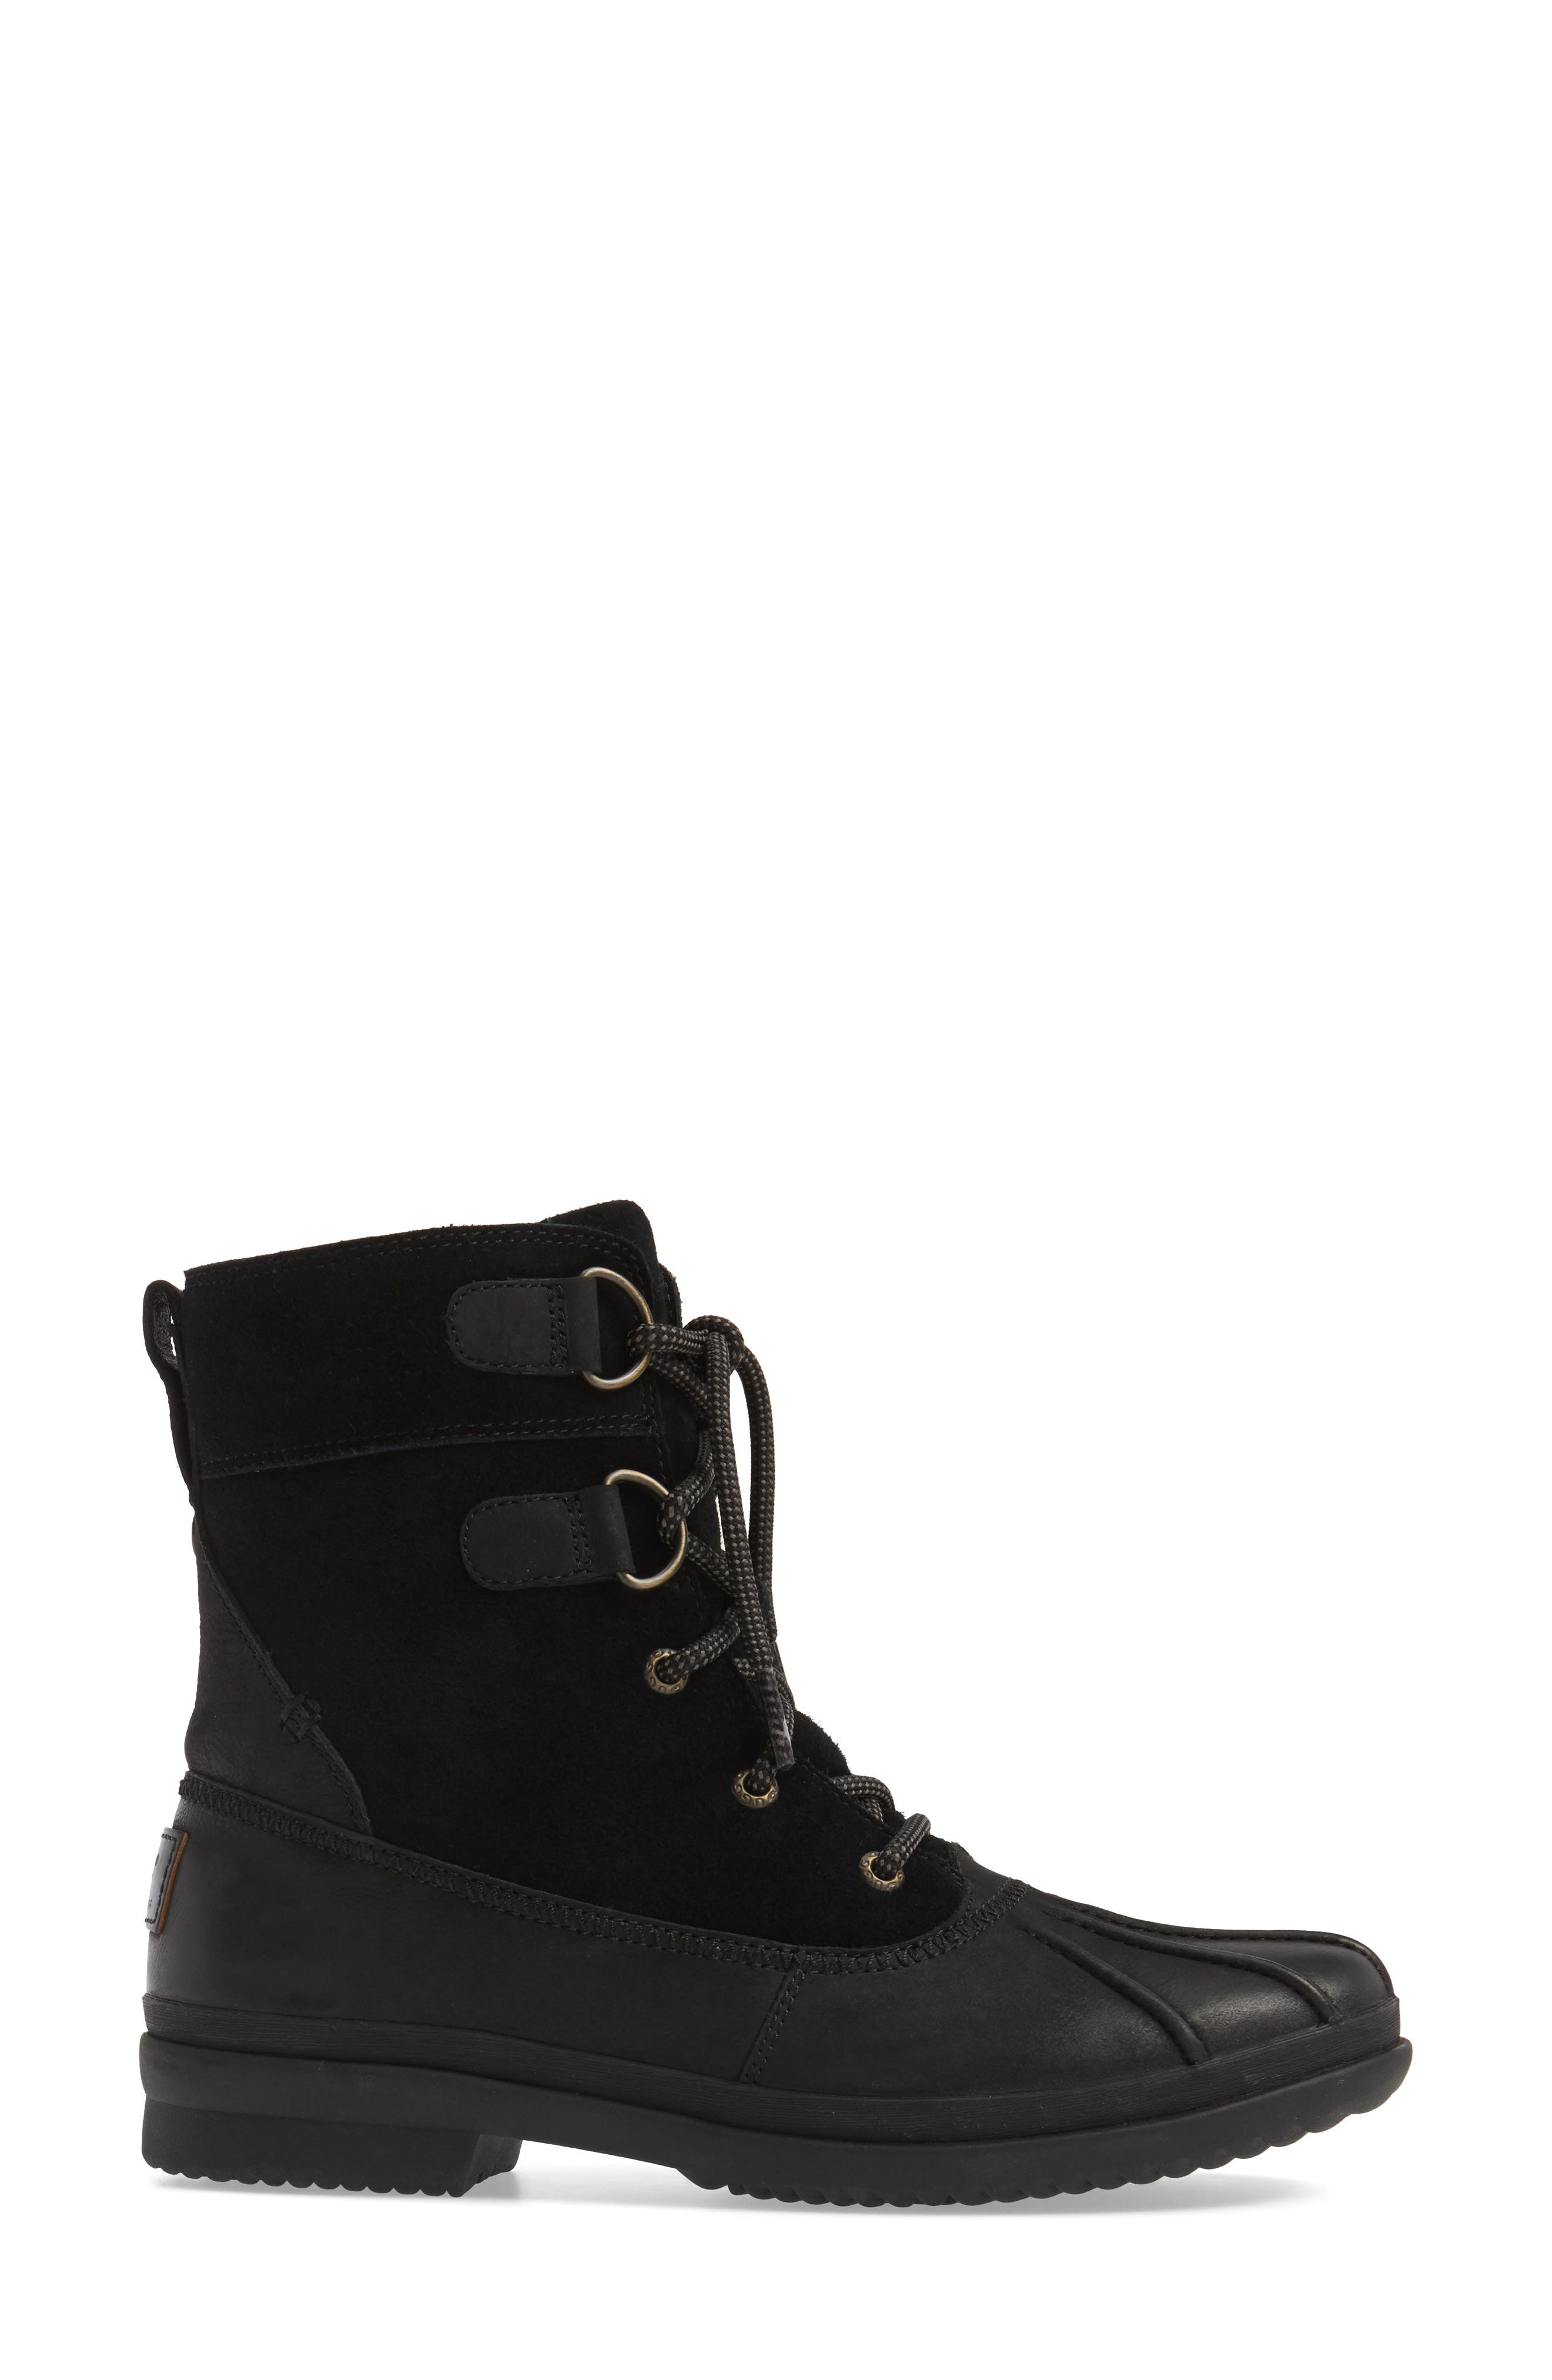 Azaria Waterproof Boot,                             Alternate thumbnail 3, color,                             Black Leather